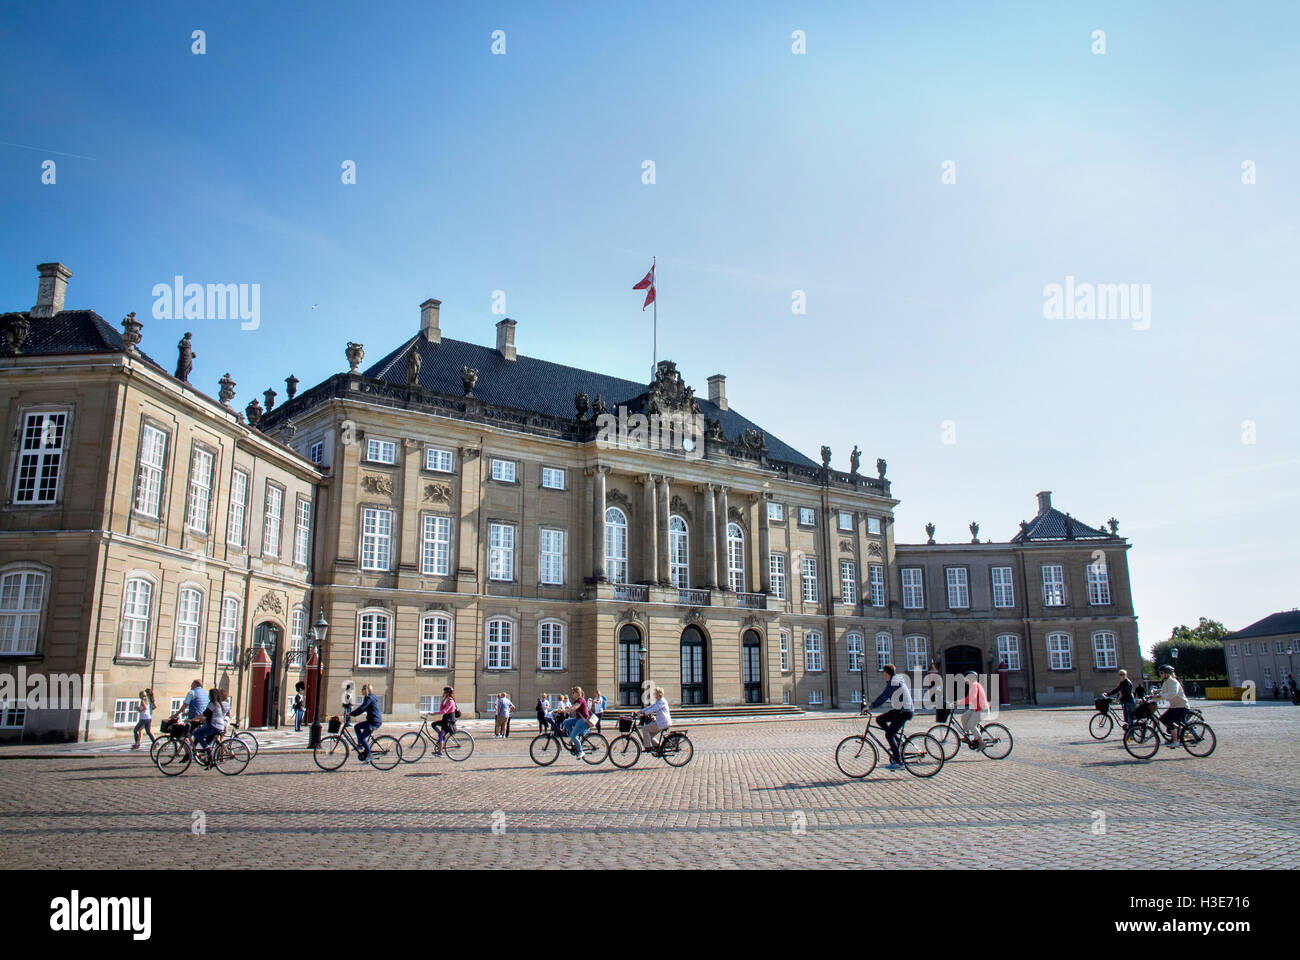 Cyclists pass in front of one of the buildings of the Amalienborg Palace the official residence of the Danish Royal's, - Stock Image